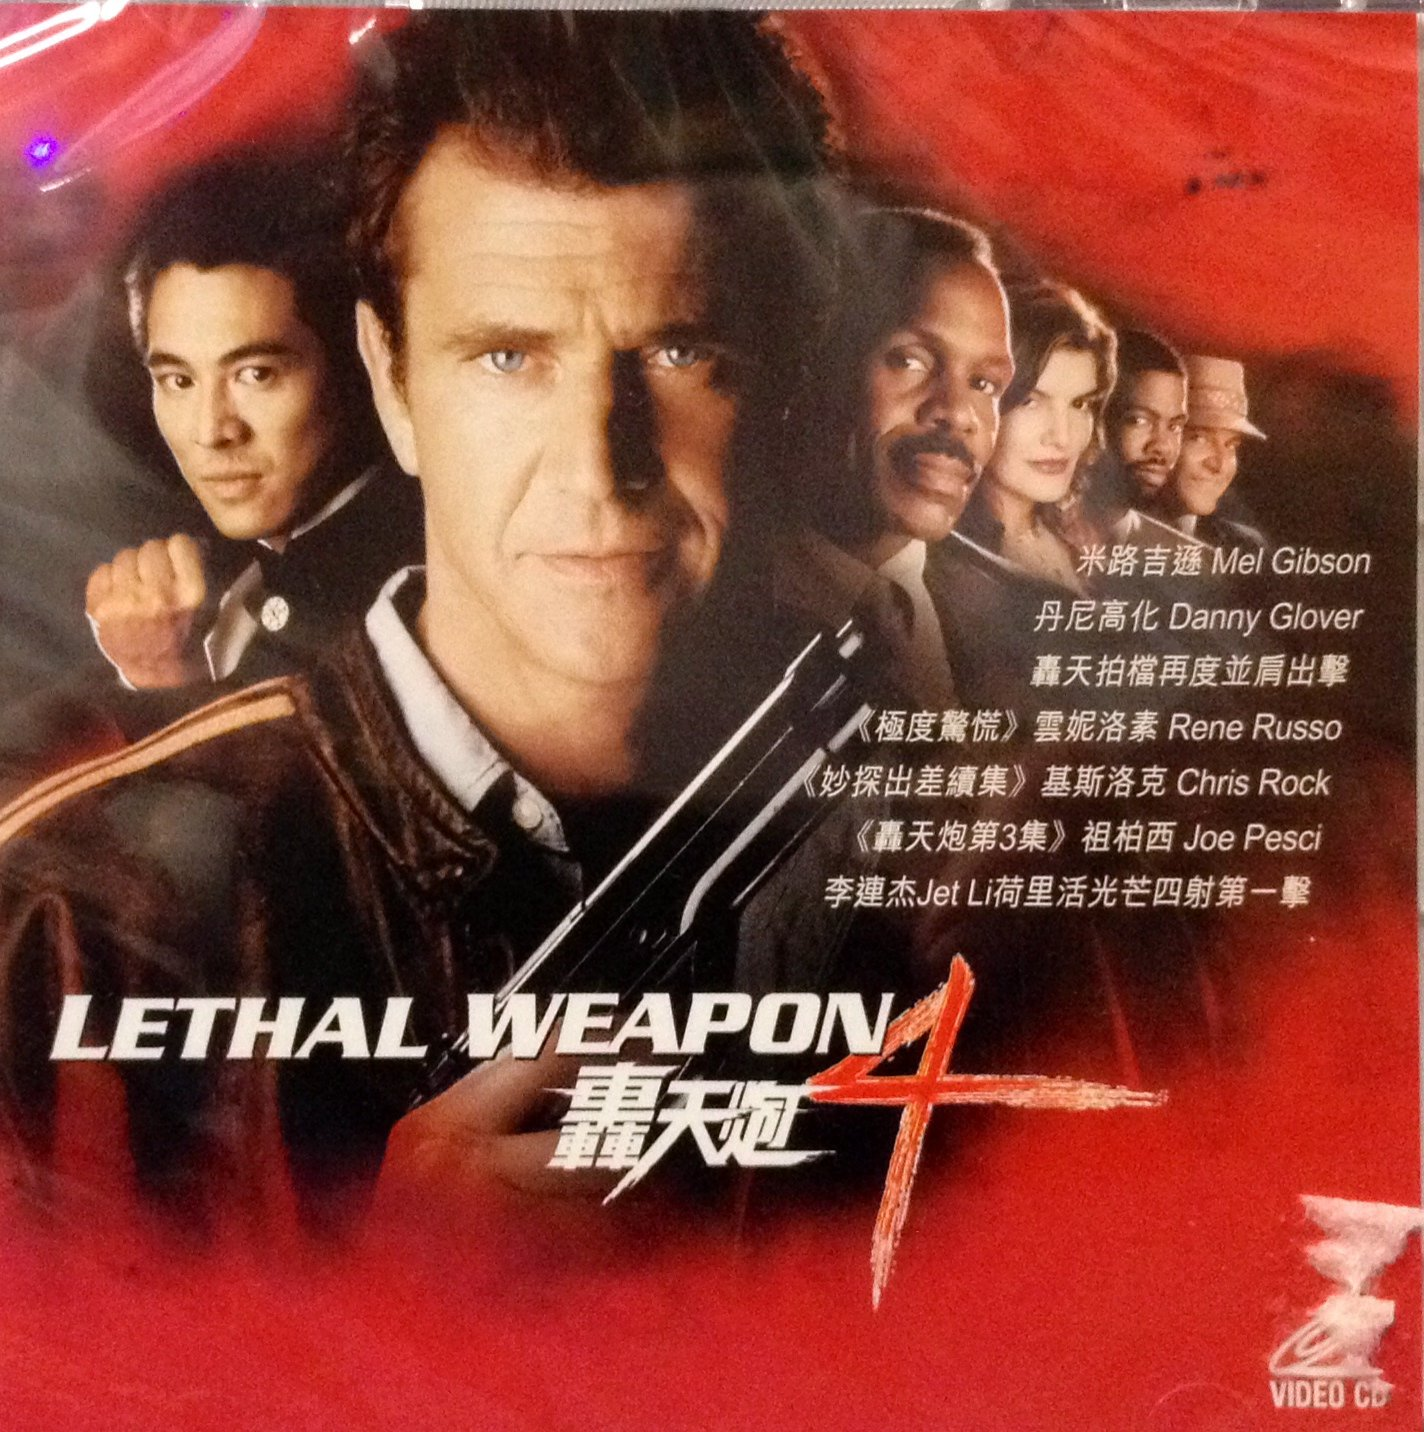 Amazon Com Lethal Weapon 4 1998 By Warner Bros Version Vcd Brand New Factory Sealed In English W Chinese Subtitles Imported From Hong Kong Mel Gibson Danny Glover Joe Pesci Richard Donner Movies Tv